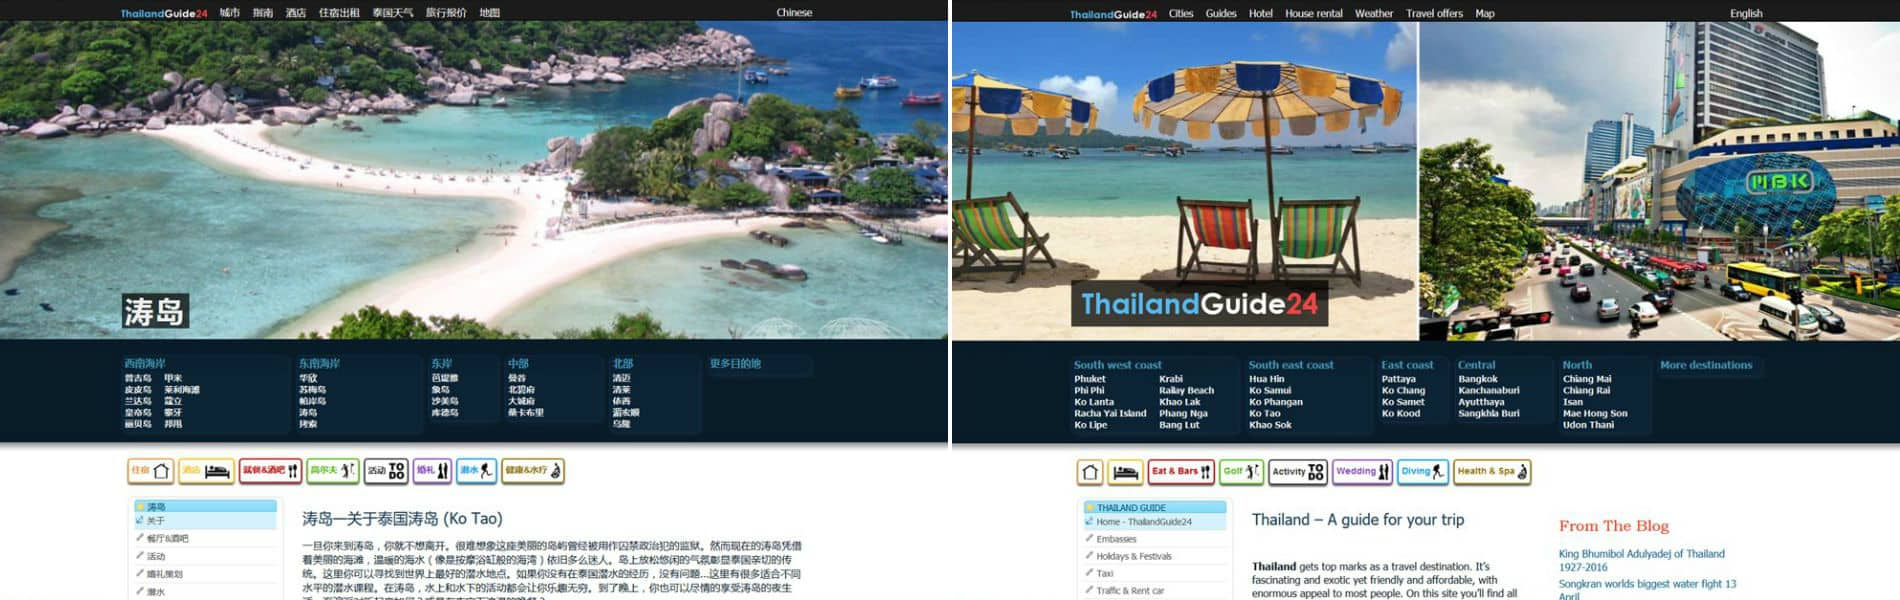 thailandguide24-travel website